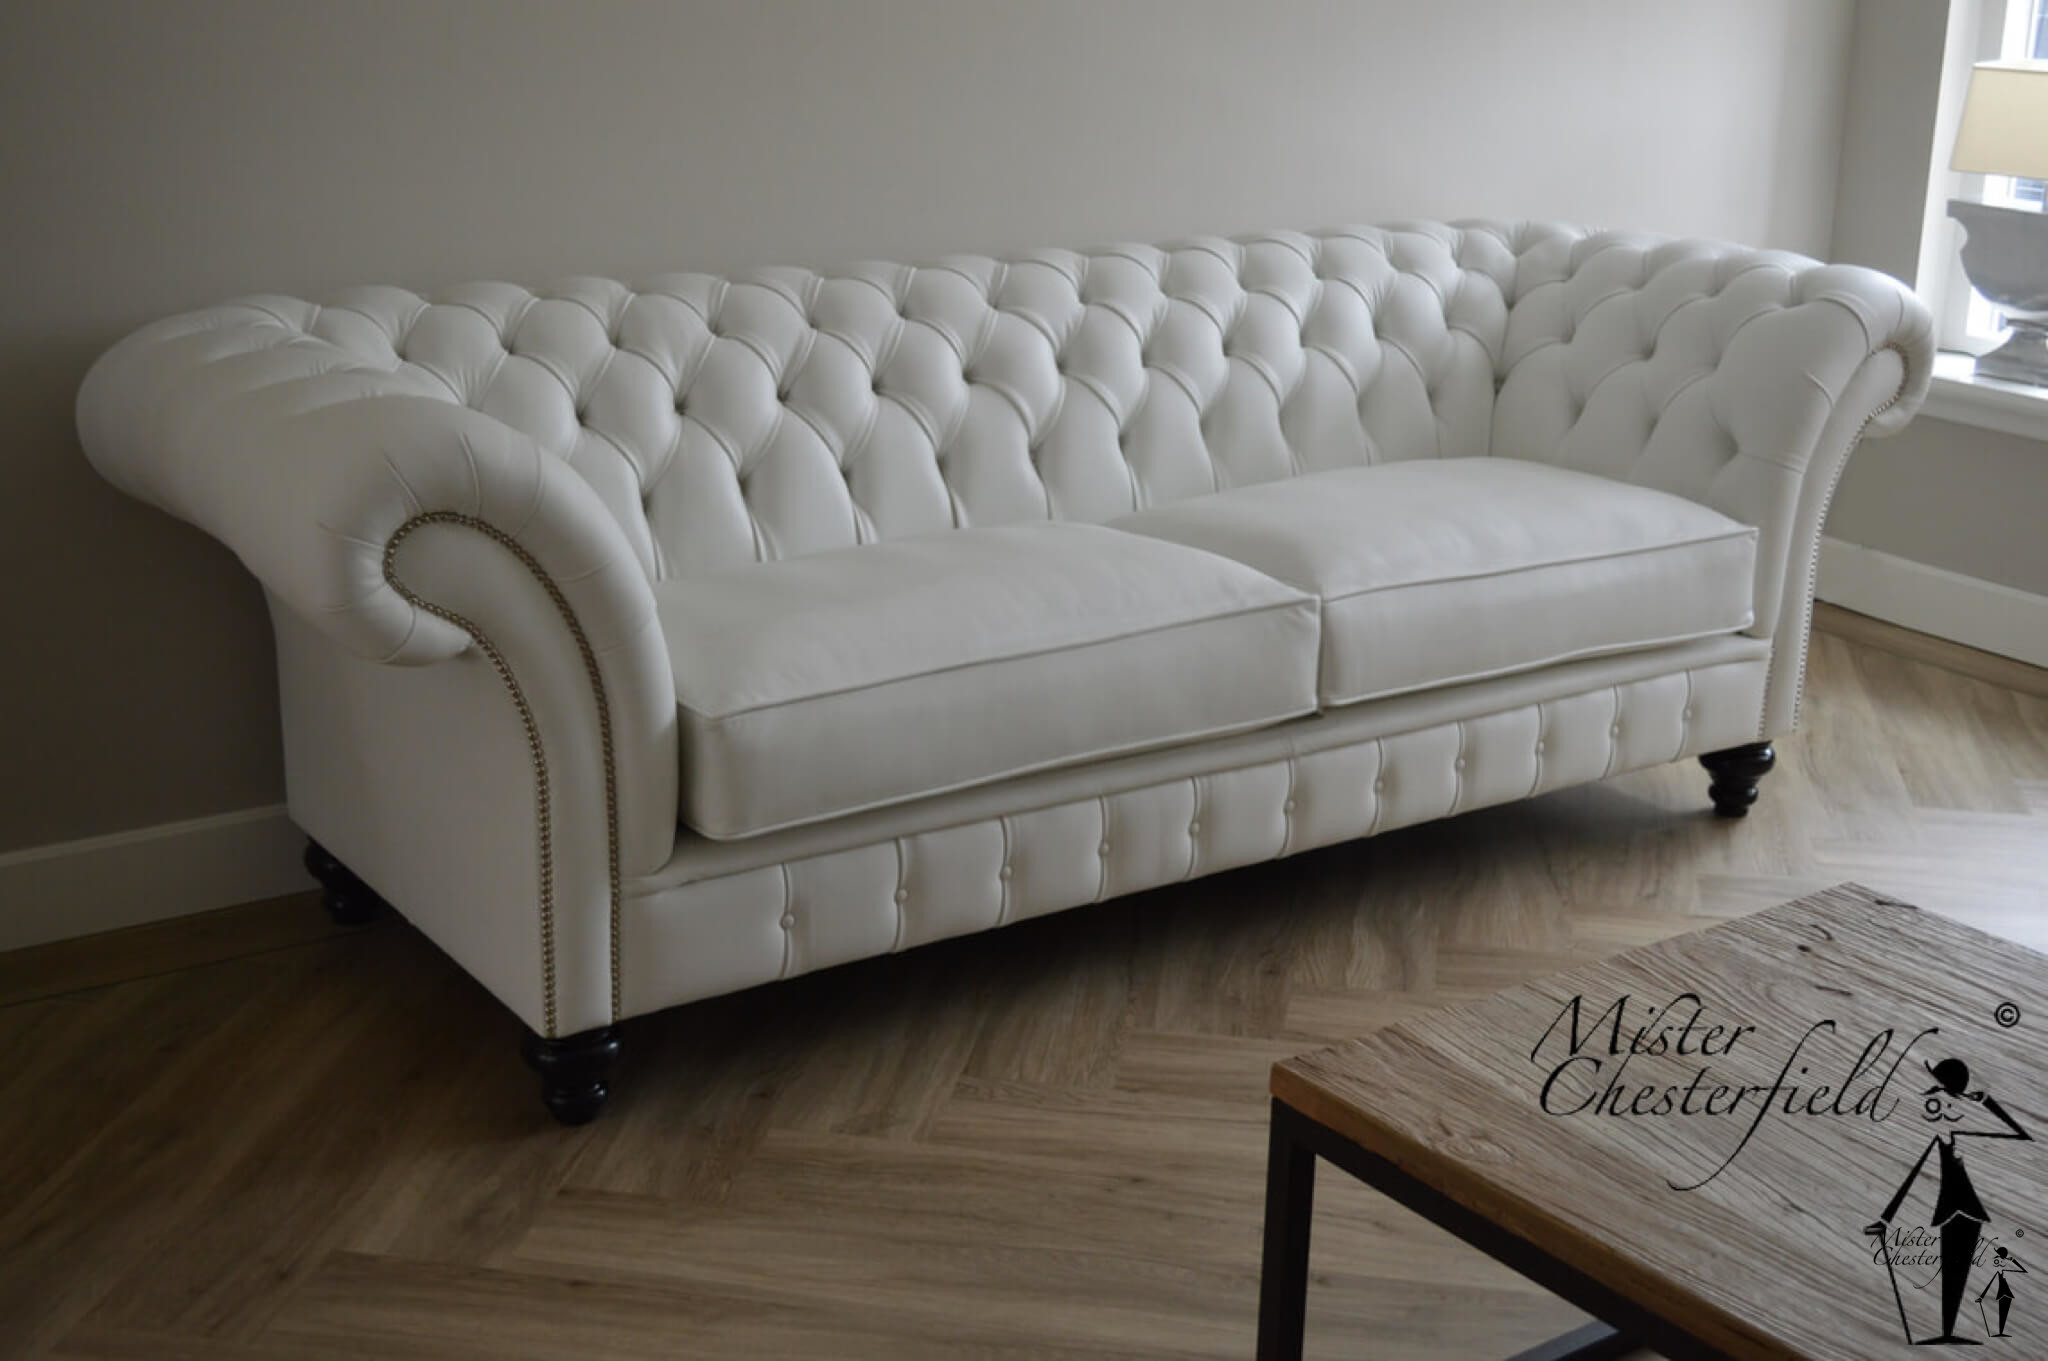 CHESTERFIELD-FURNITURE